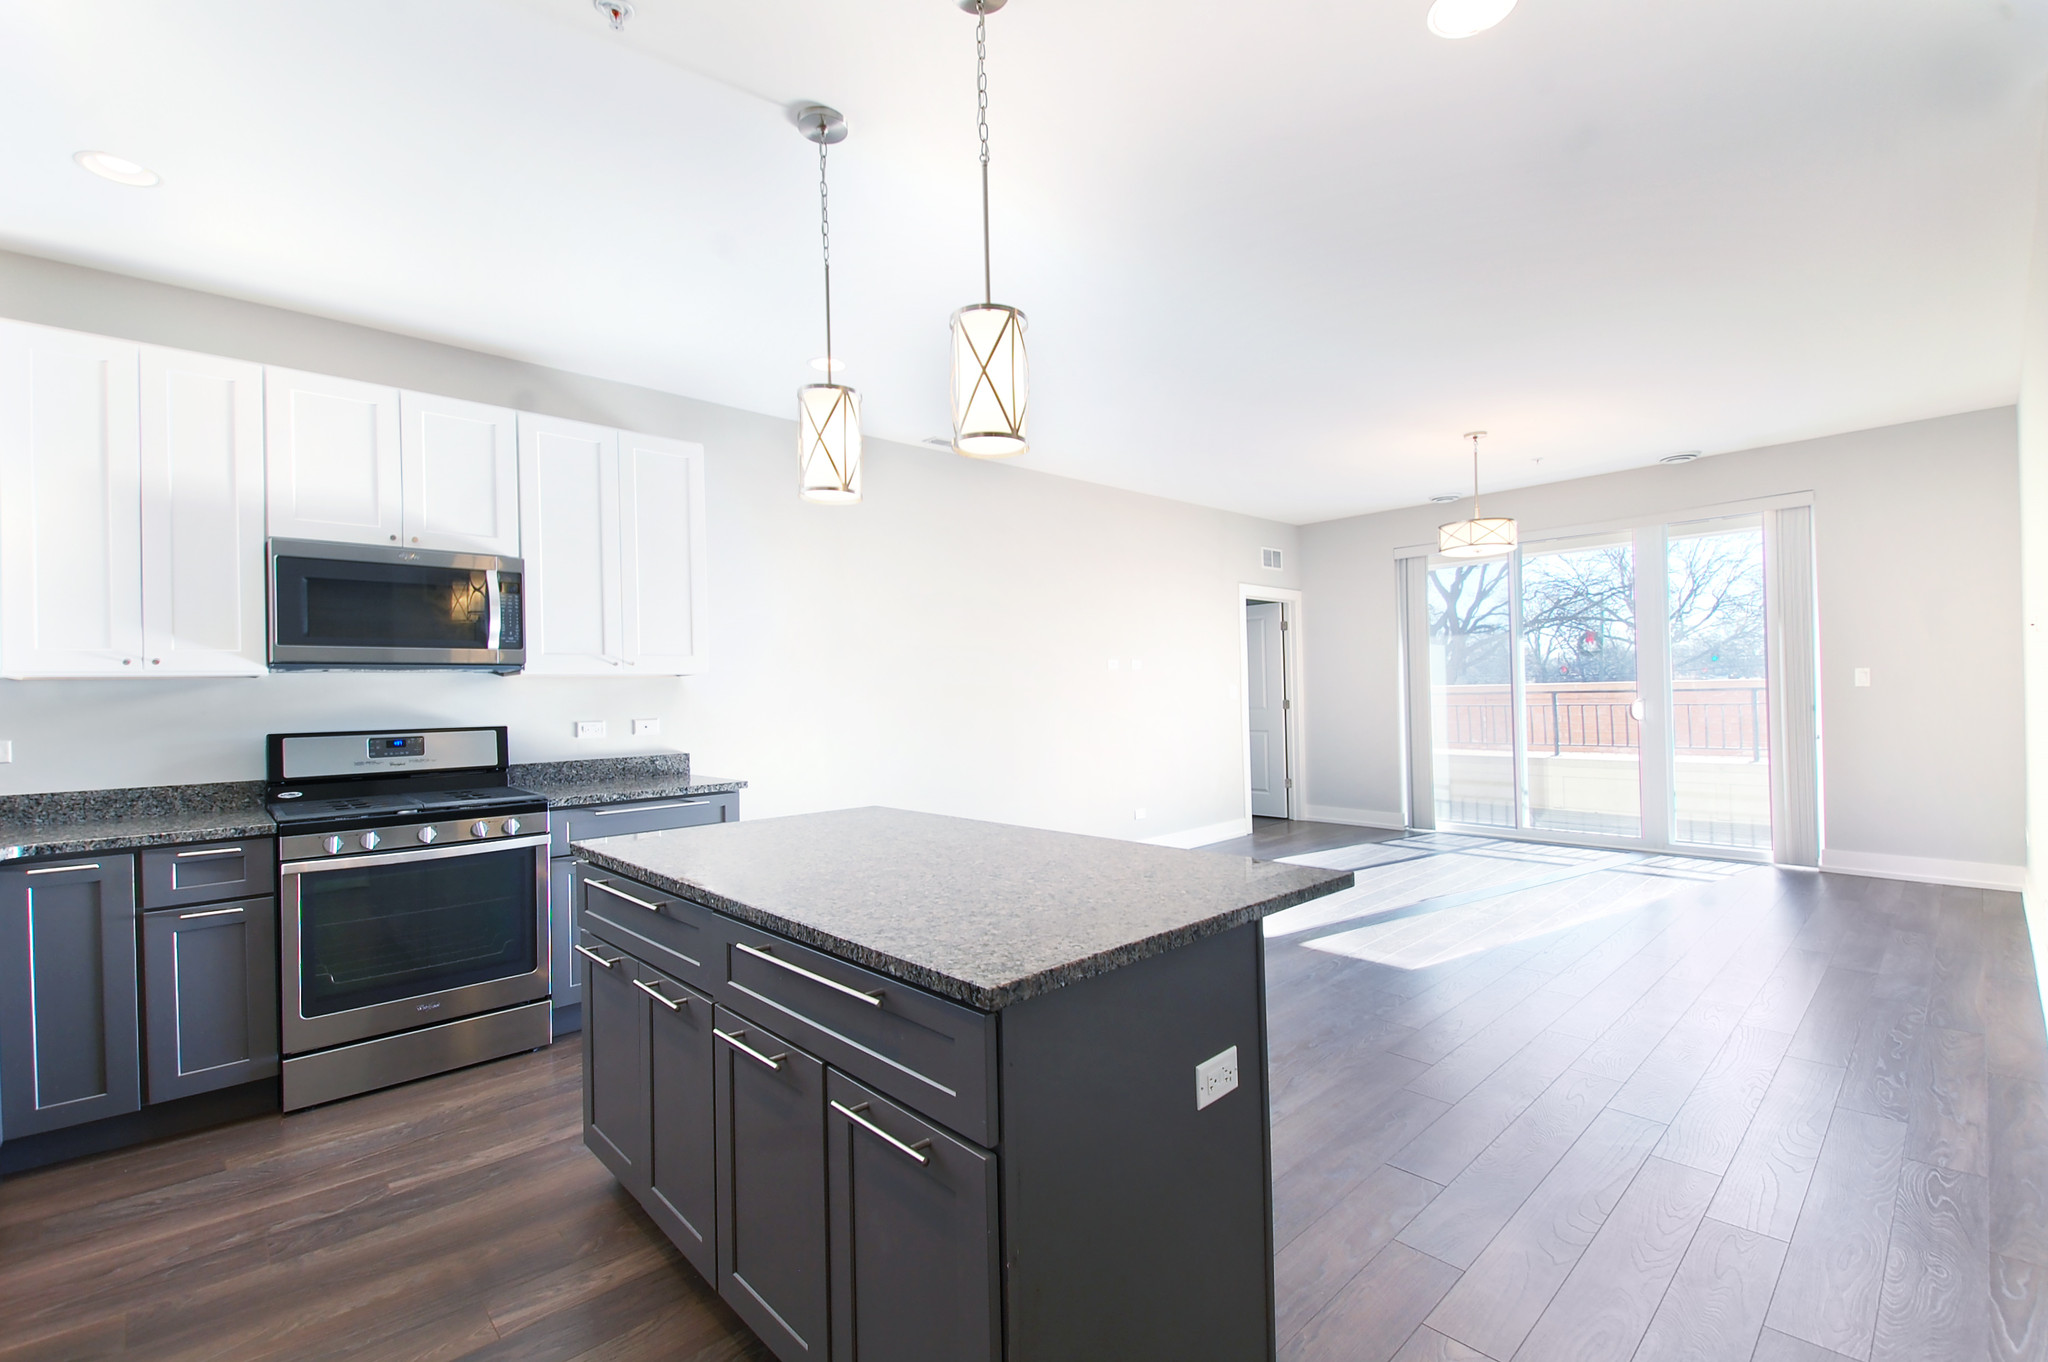 2-Bedroom House In Downtown Glenview